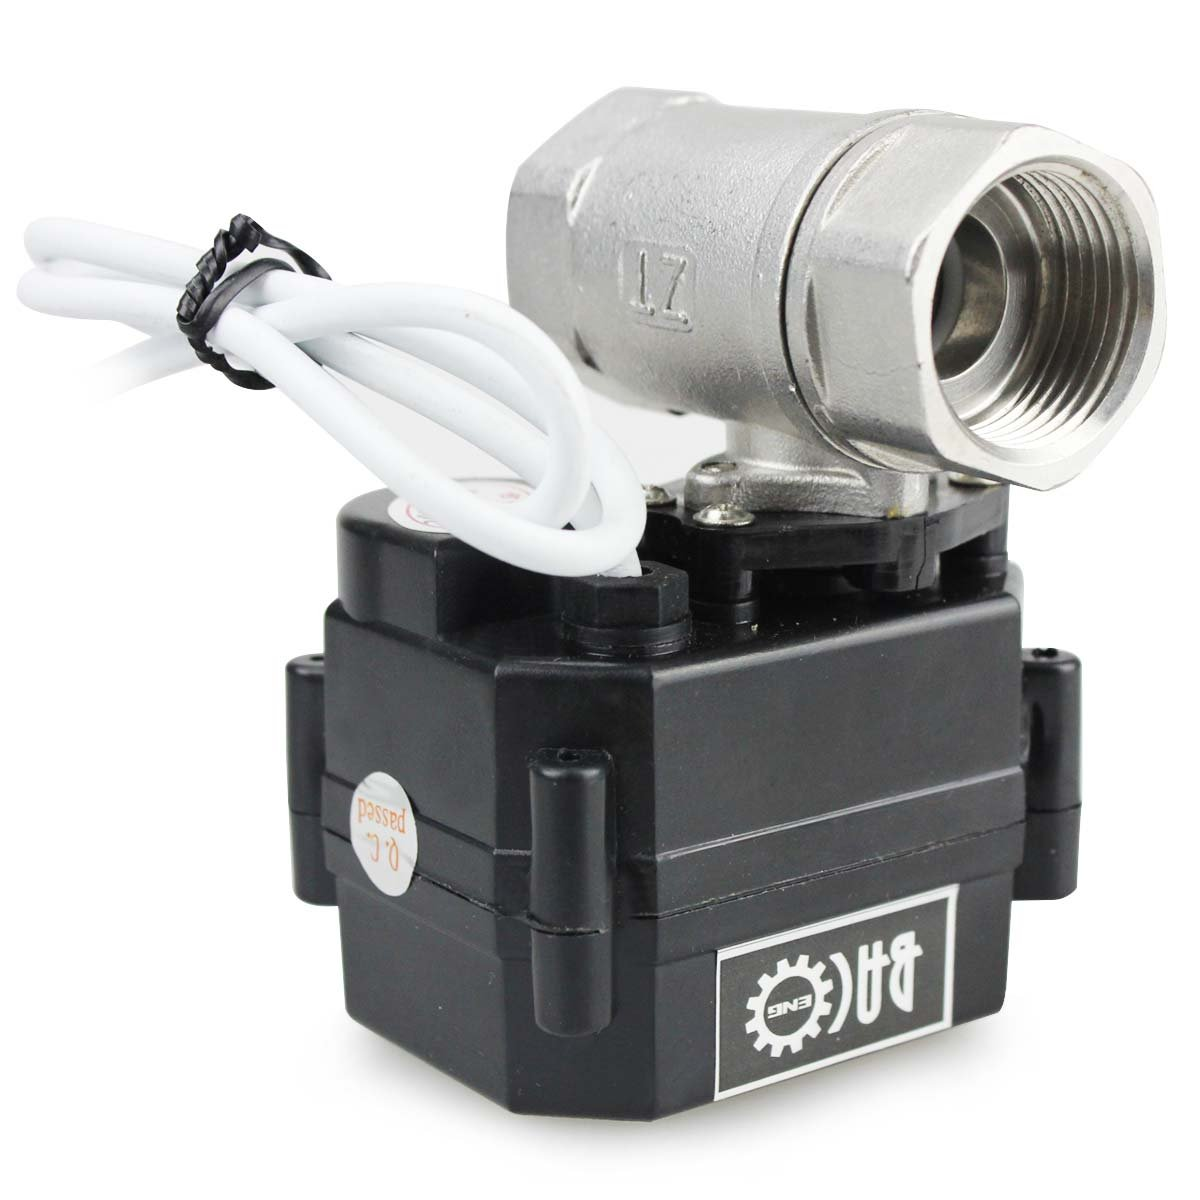 BACOENG 3/4'' DN20 Stainless Steel NPT 2 Port Motorized Valve (AC/DC9-24V CR04 Two Wires Spring Return When Power Off Electric Ball Valve)